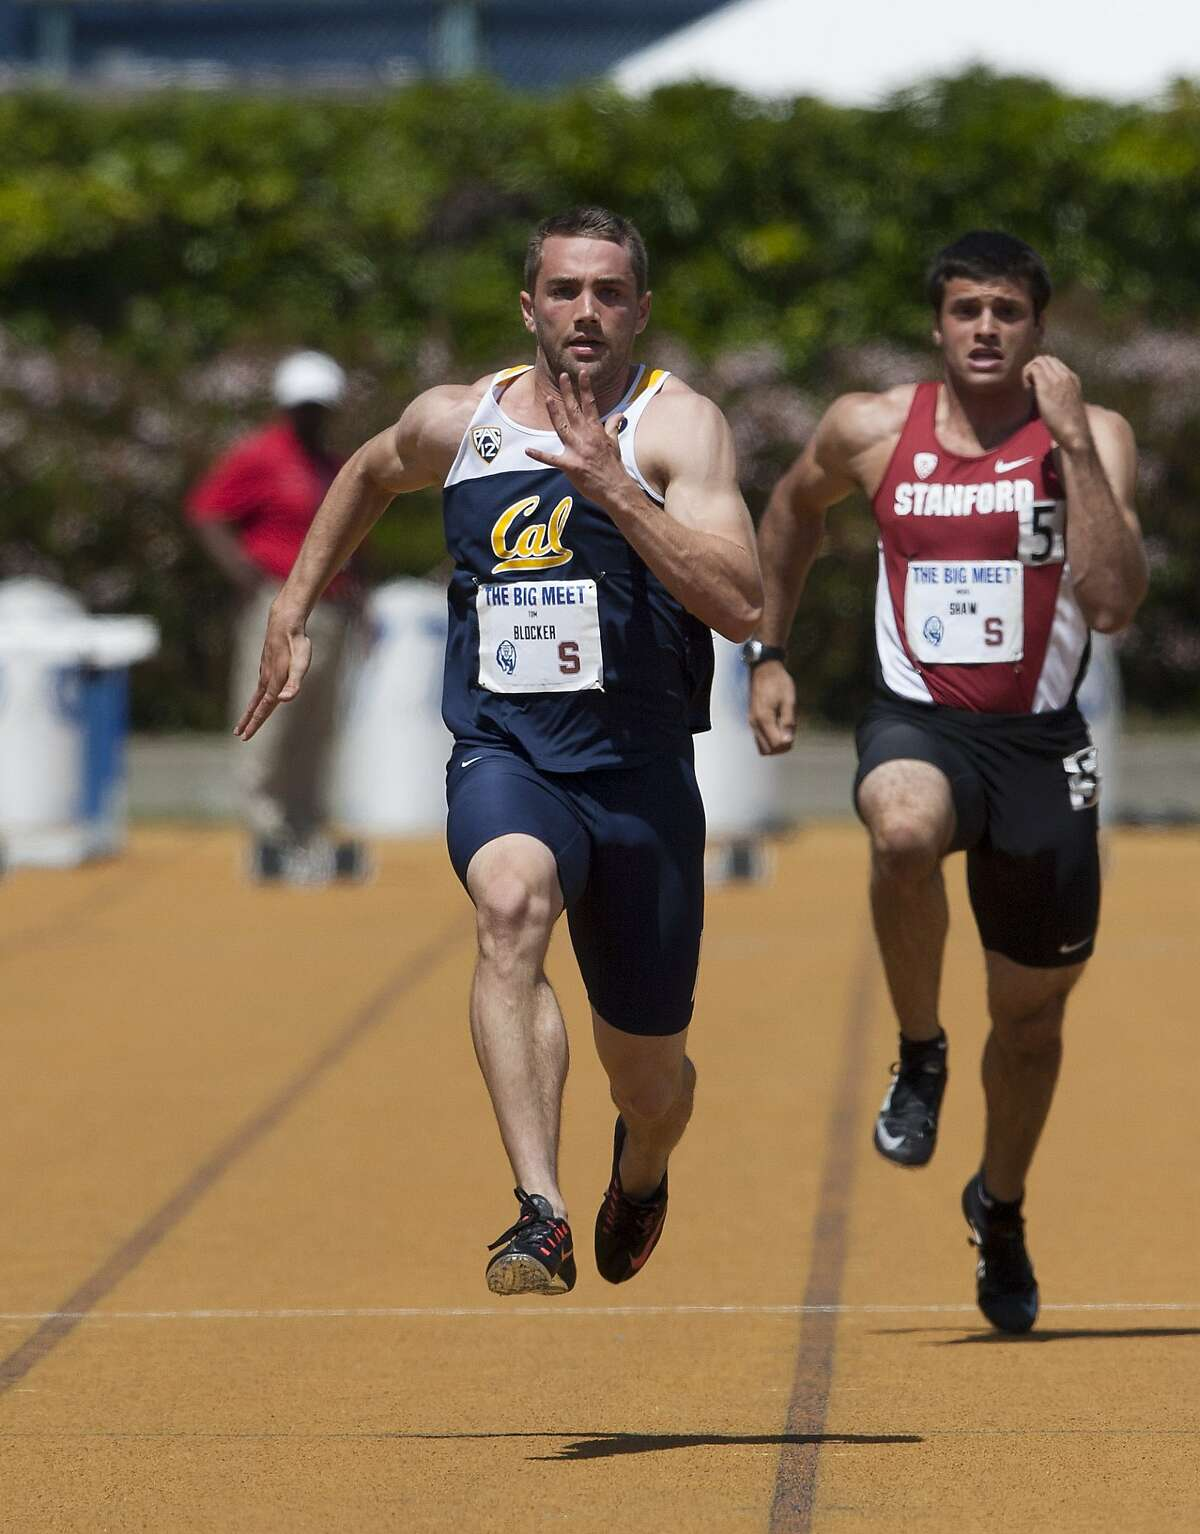 Cal's Tom Blocker is the Bears' top sprinter - and is No. 4 in the Pac-12 this season with a 10.41 100-meter time. Blocker will run the 100, 200 and will participate in the 4x100 and 4x400 relays at the conference championships in Washington.